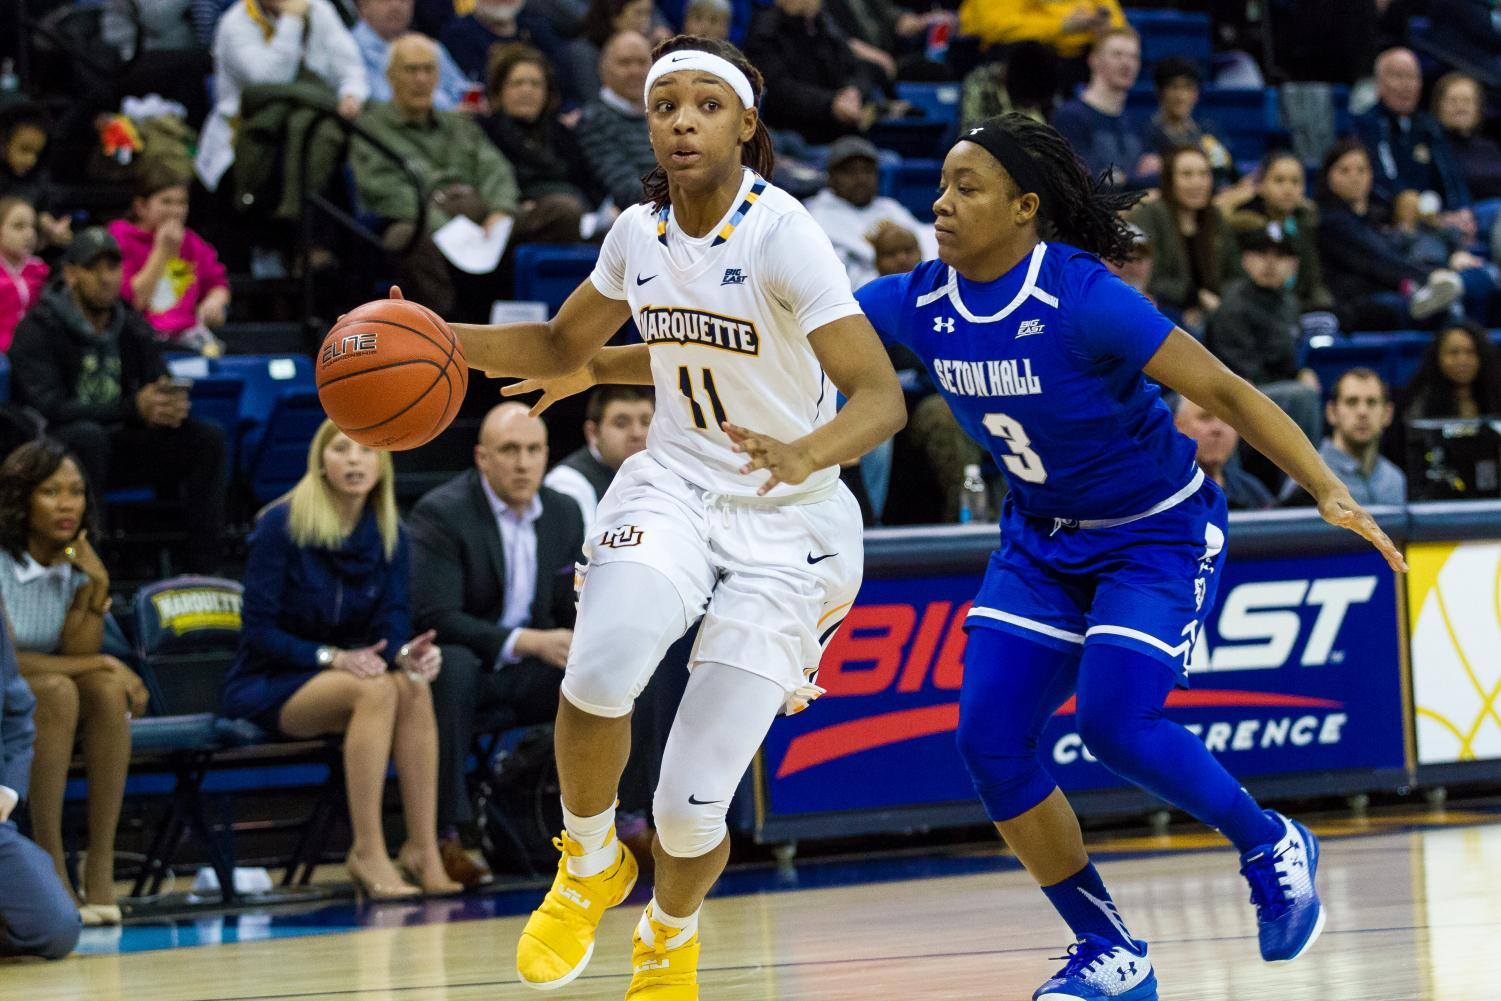 Allazia Blockton scored just eight points against DePaul in the BIG EAST Championship game loss, the worst loss in the Carolyn Kieger era.